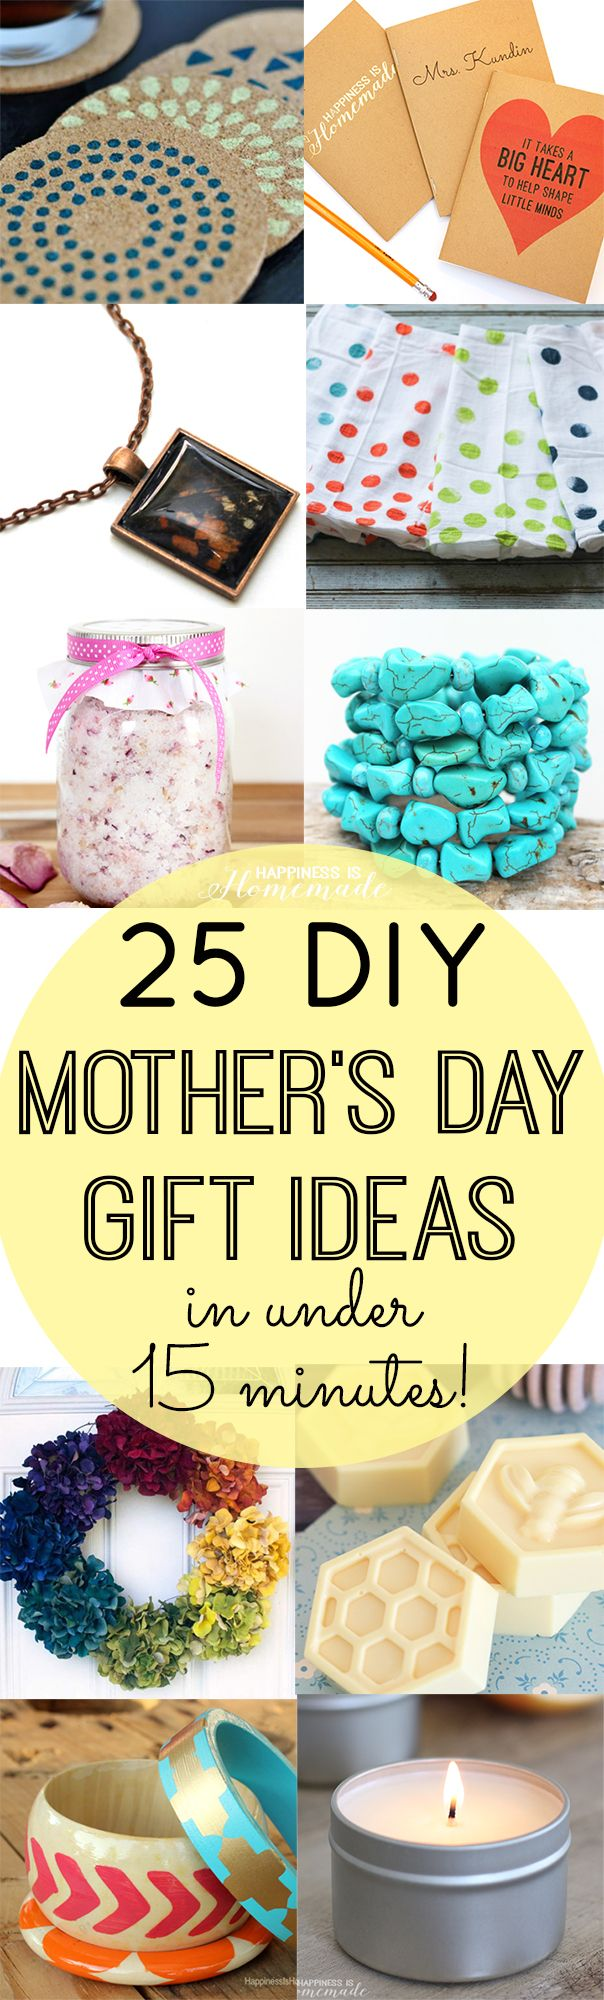 Show Mom you love her with one of these 25 awesome (and inexpensive!) DIY Mother's Day gift ideas that you can make in around 10-15 minutes!